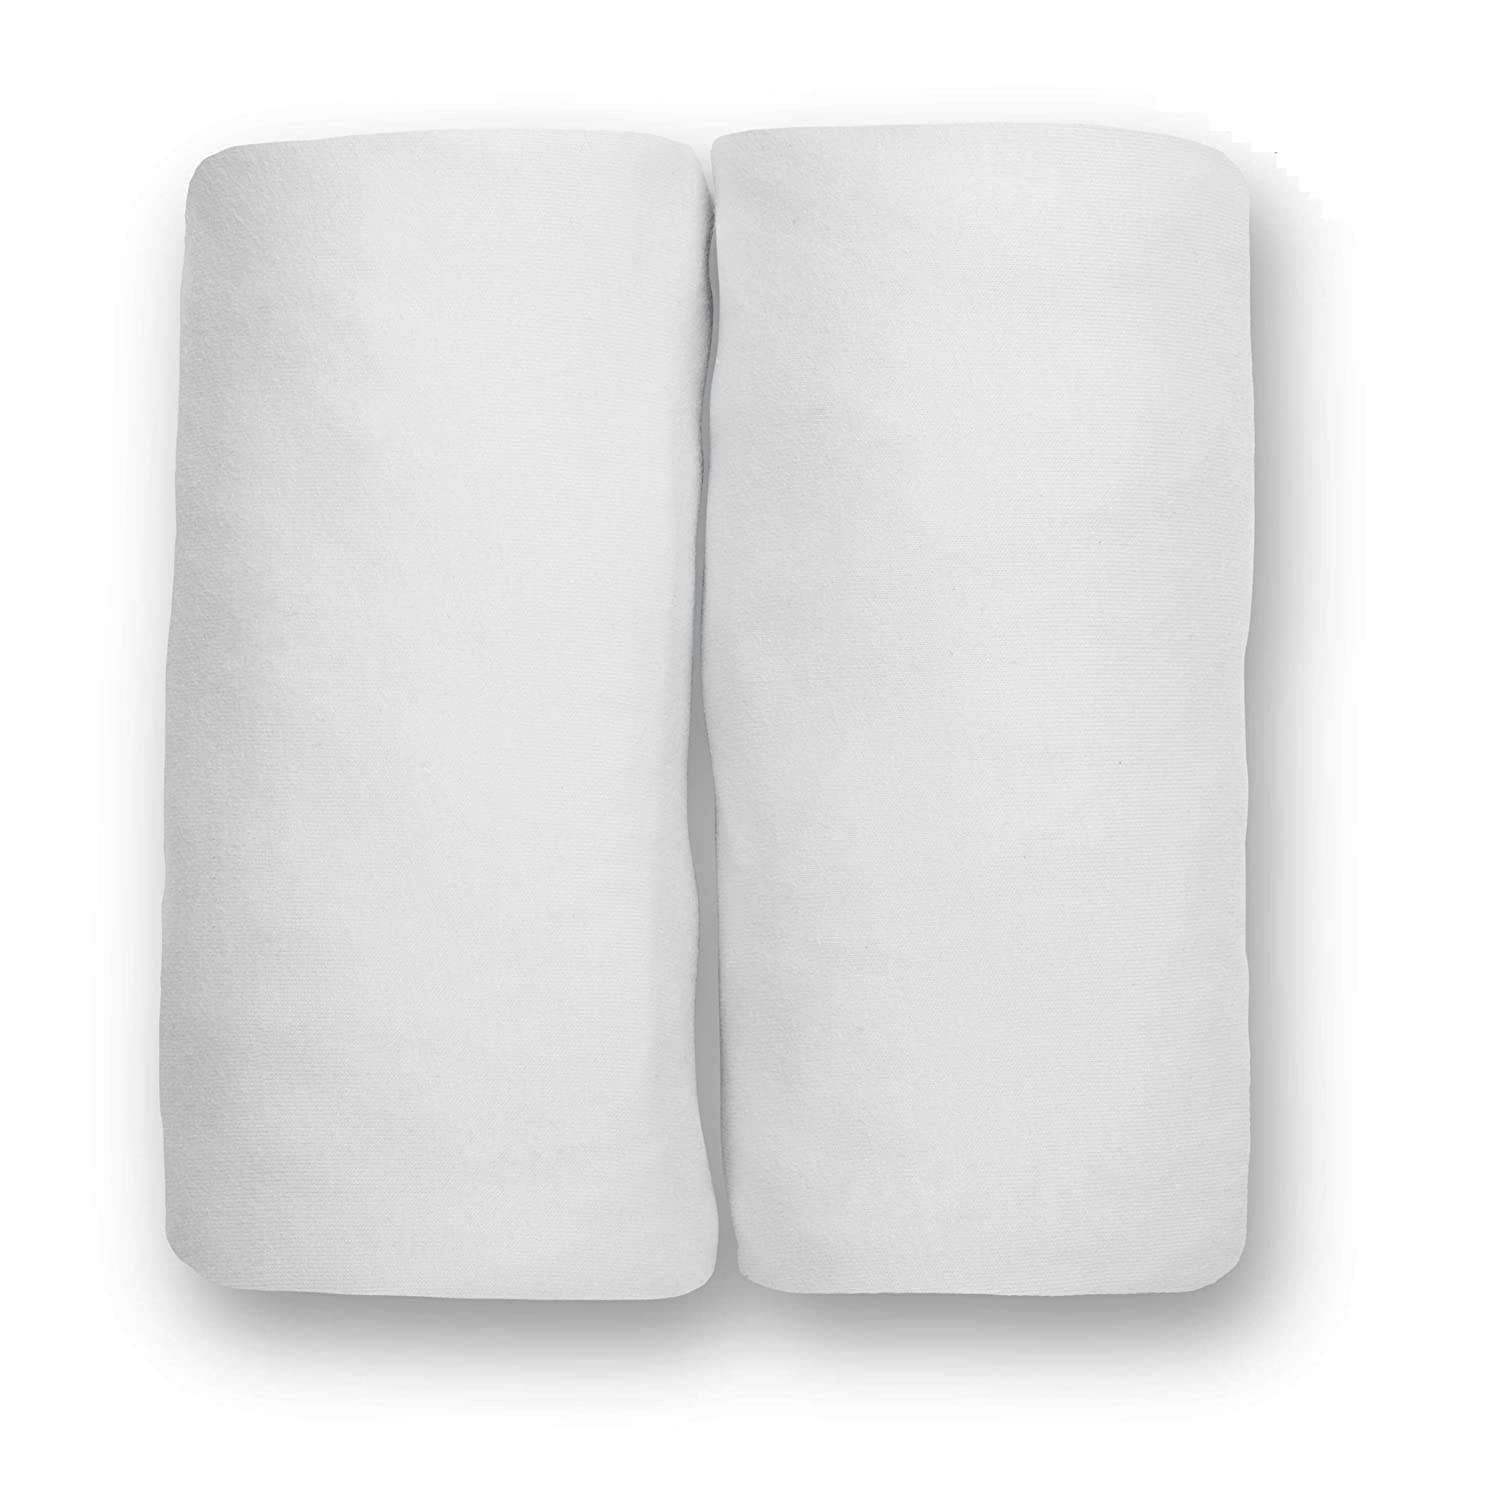 Delta Children Changing Pad Covers - 2 Pack | Solid Color | 100% Jersey Knit Cotton | Fits Standard Changing Pads, White